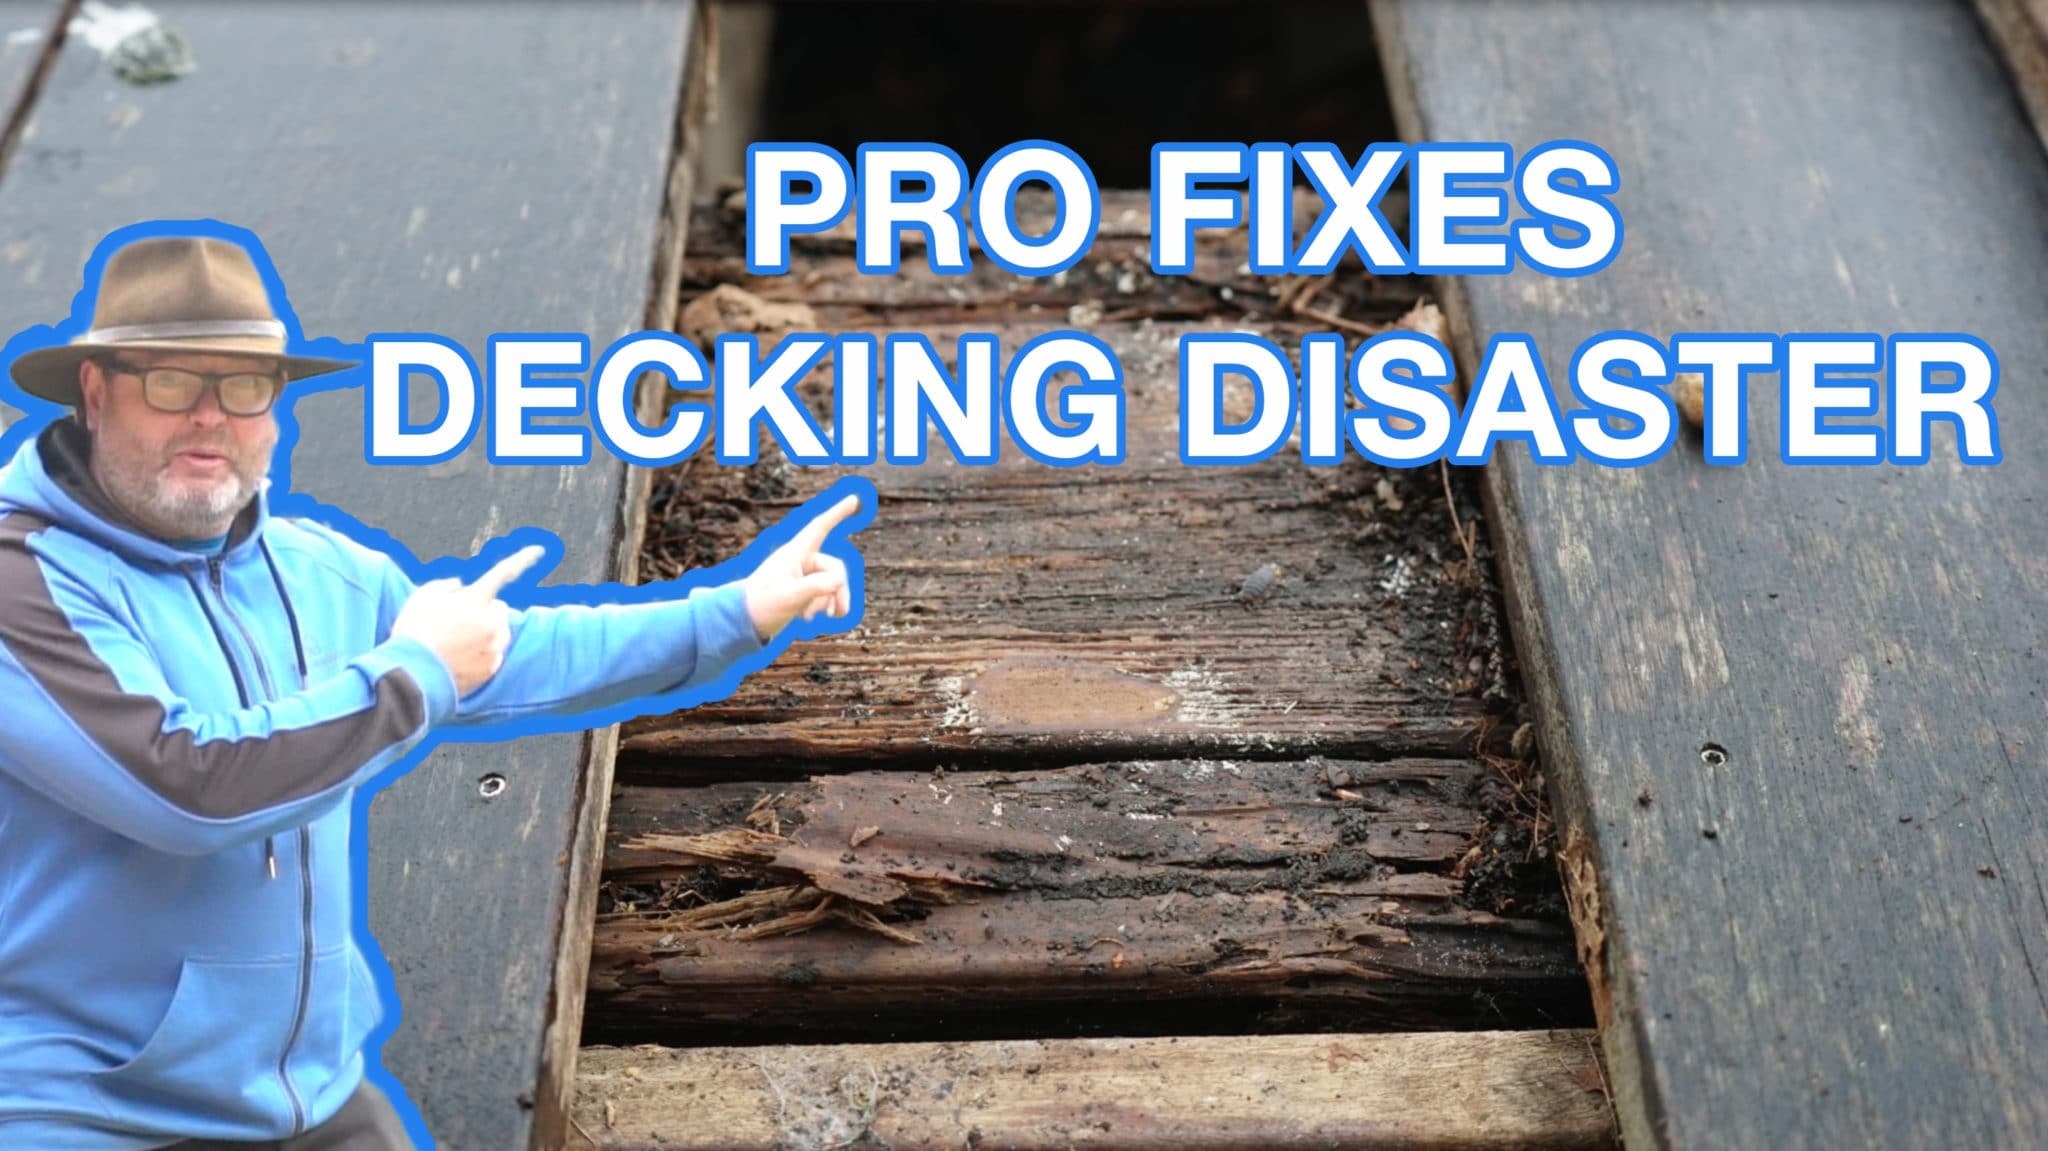 Professional fixes decking disaster